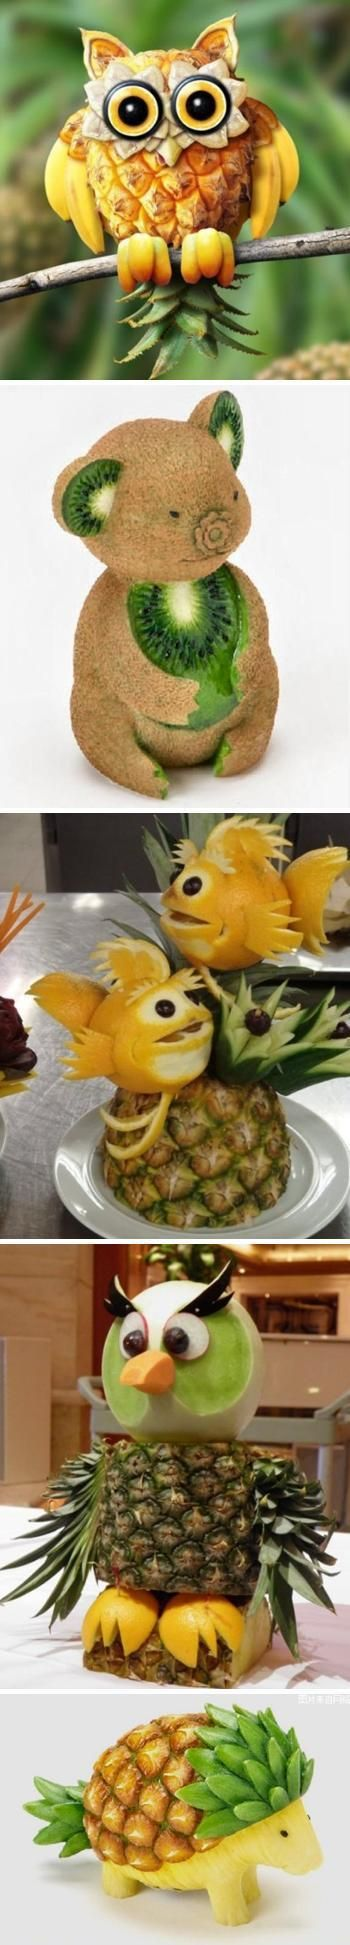 Lifelike-creative-fruit-animal-sculptures.jpg 350×1,945 pixels